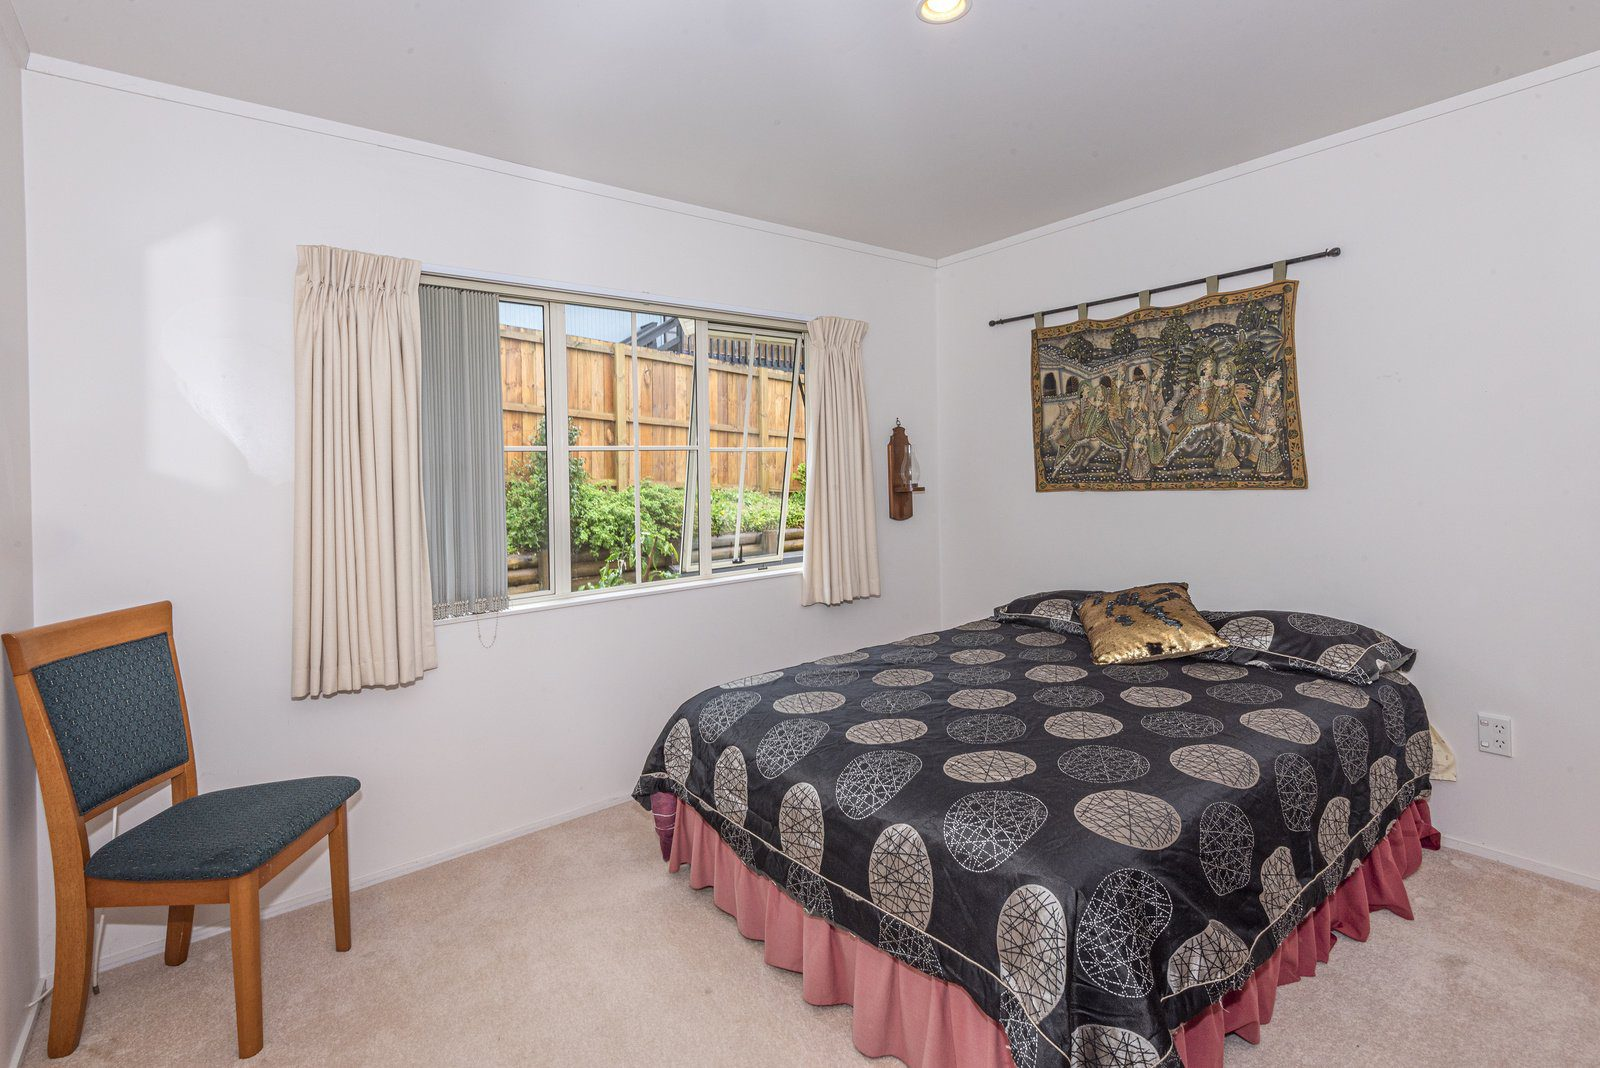 001_Open2view_ID484041-Granfield_Pl_4a